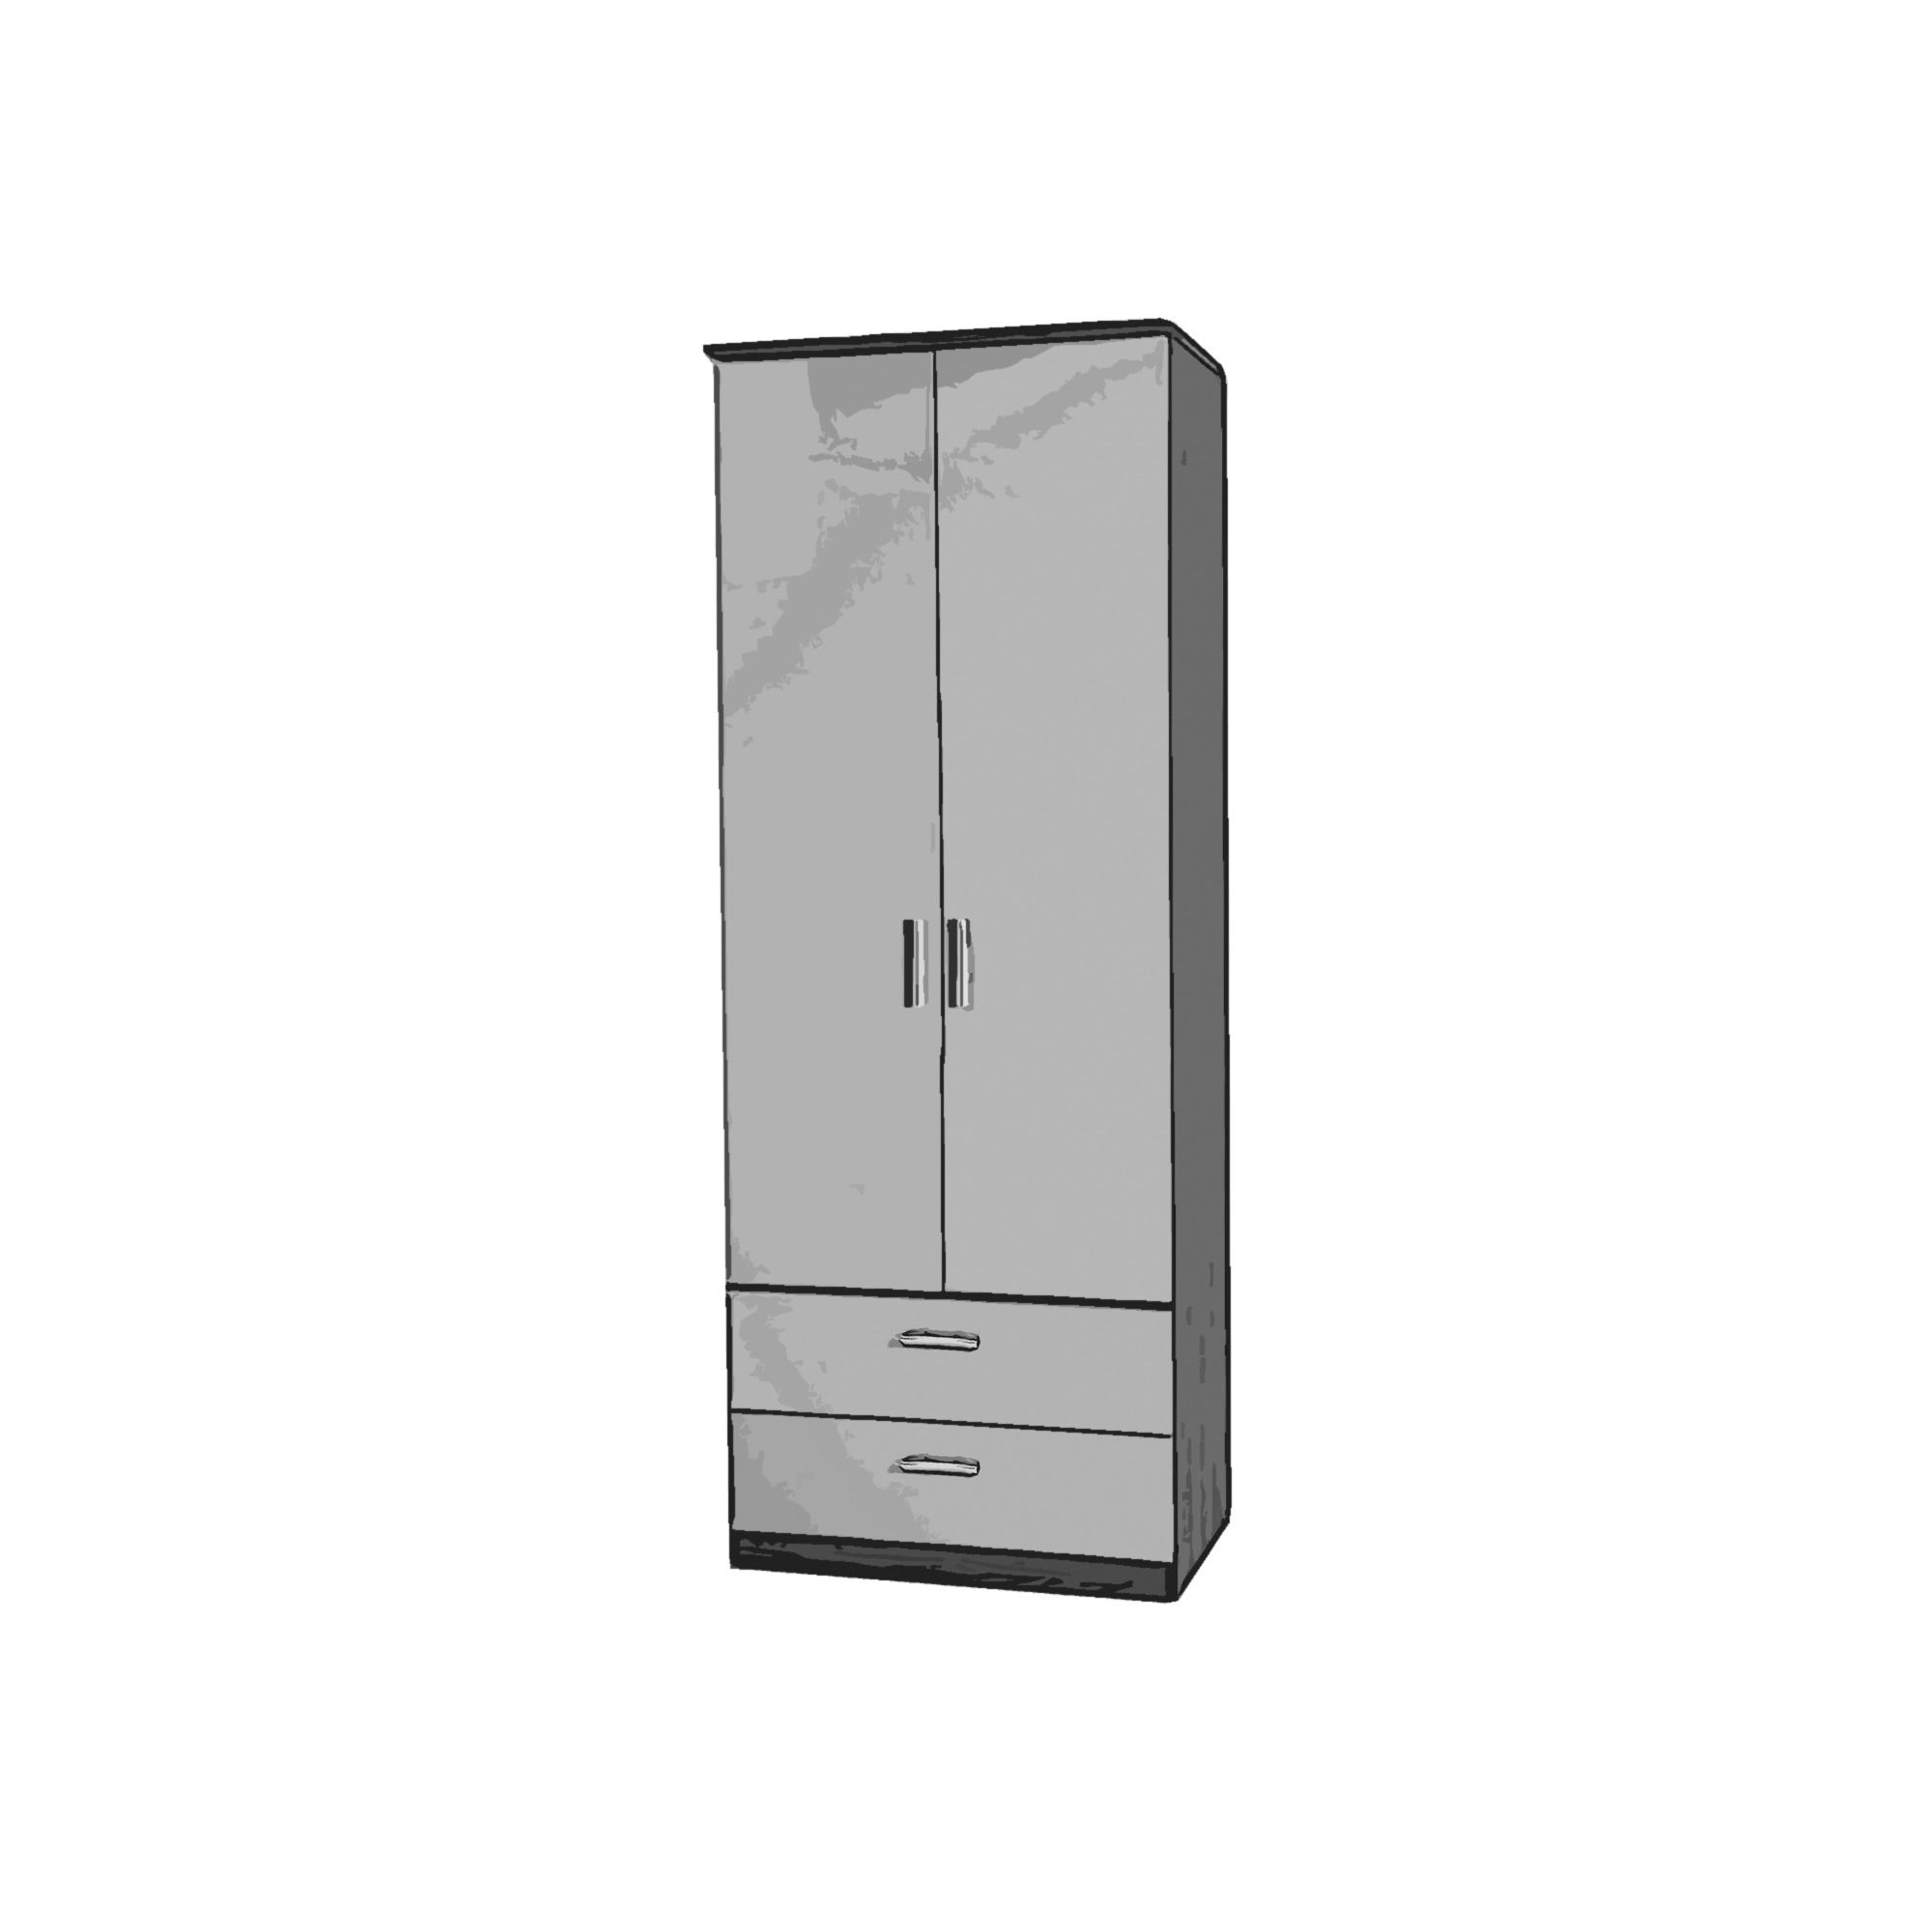 Welcome Furniture Mayfair Tall Wardrobe with 2 Drawers - Aubergine - Black - Black at Tesco Direct